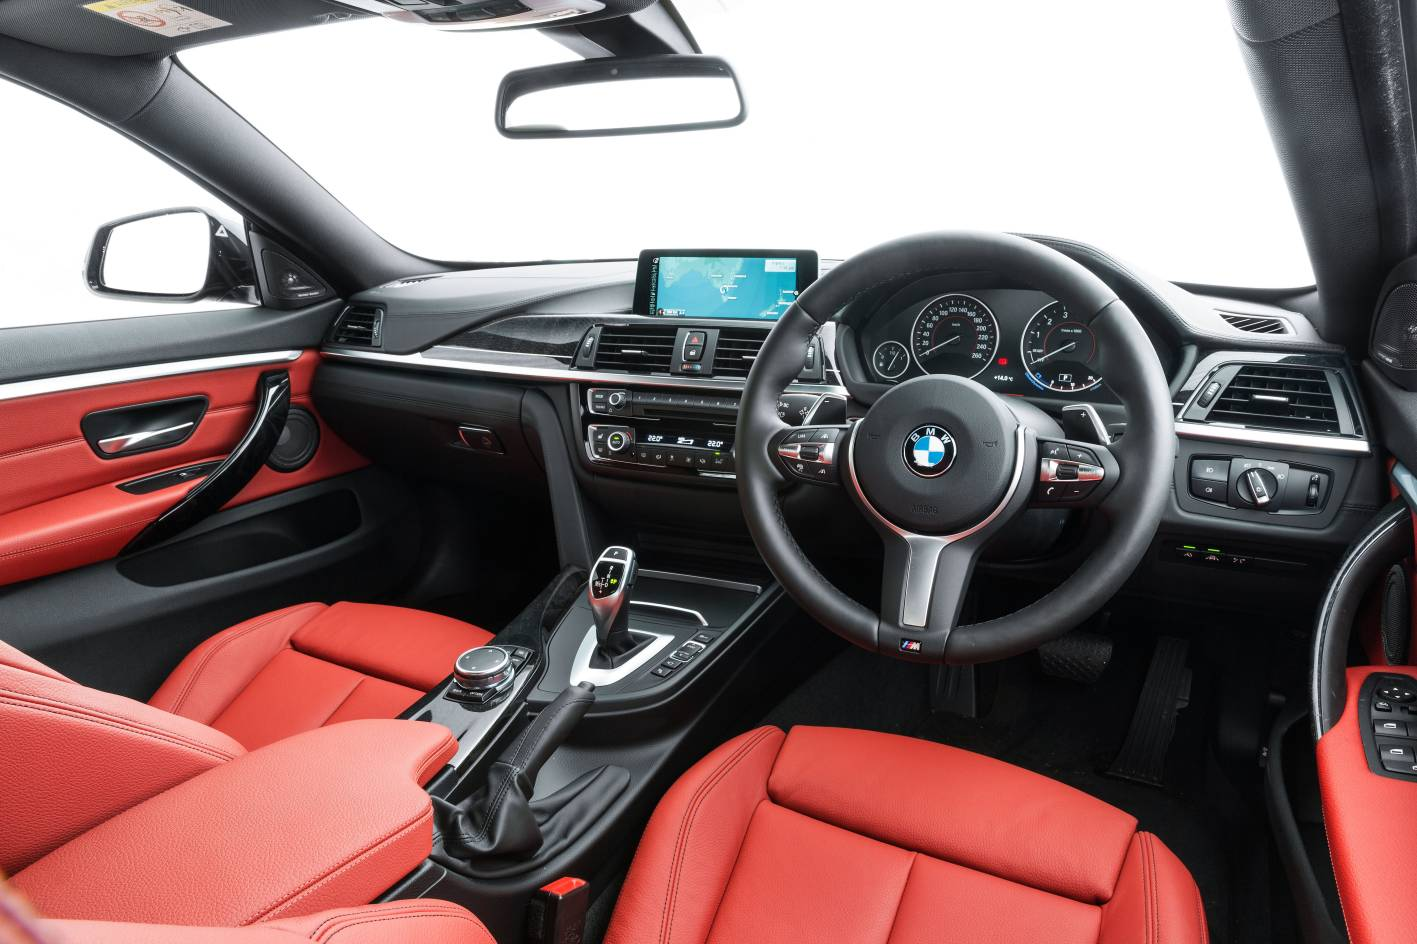 2016 Bmw 4 Series Range Pricing And Specification Announced